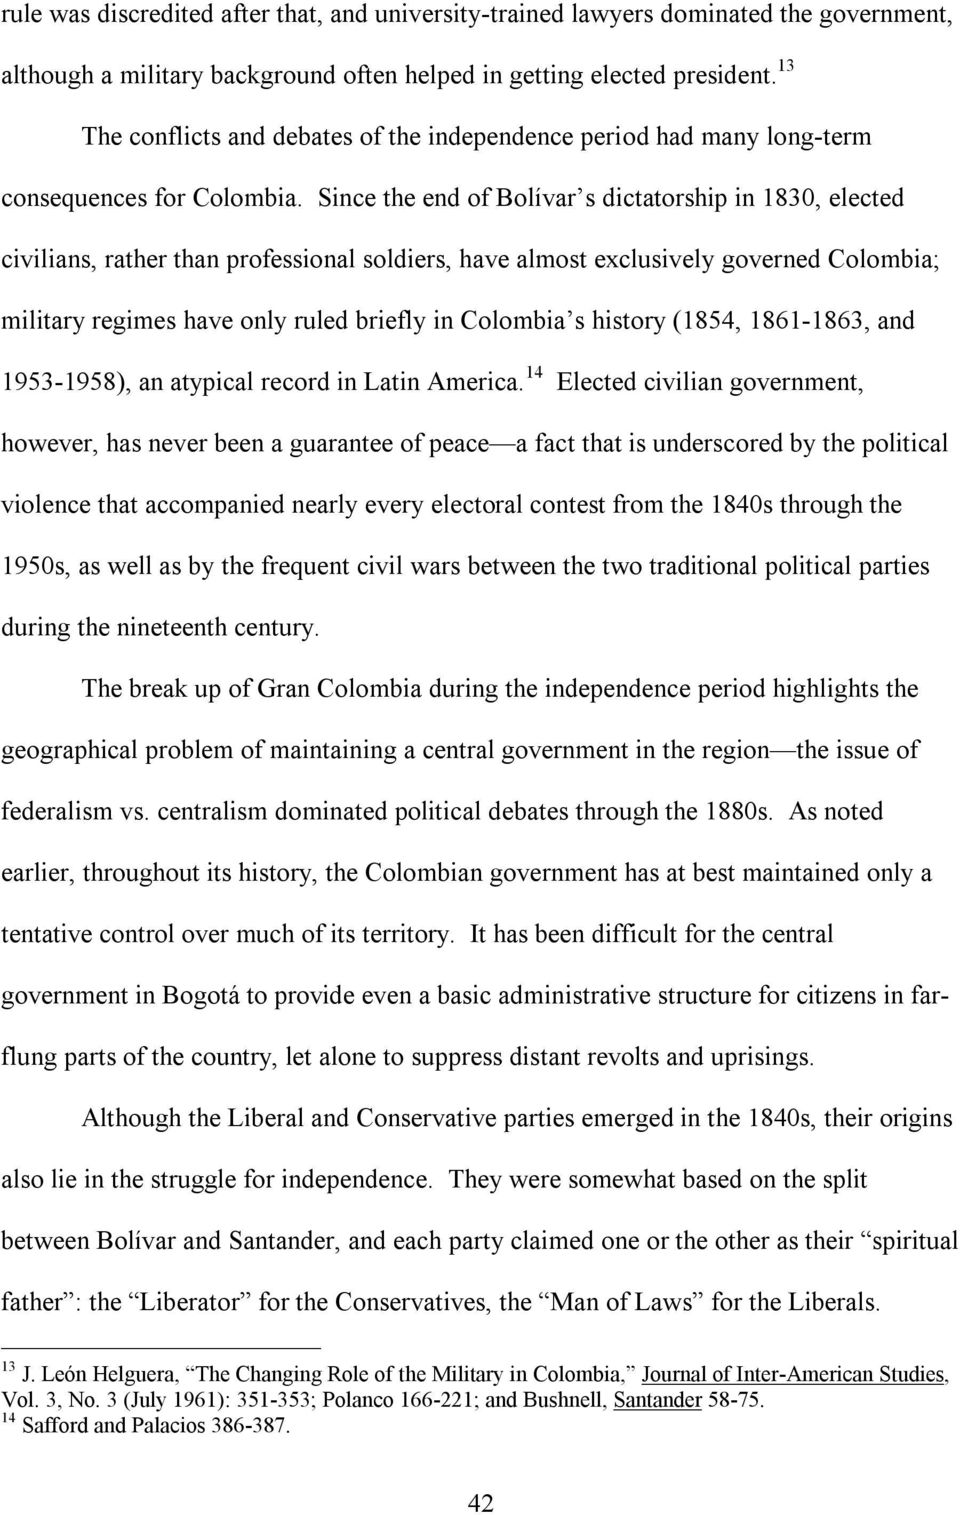 Since the end of Bolívar s dictatorship in 1830, elected civilians, rather than professional soldiers, have almost exclusively governed Colombia; military regimes have only ruled briefly in Colombia